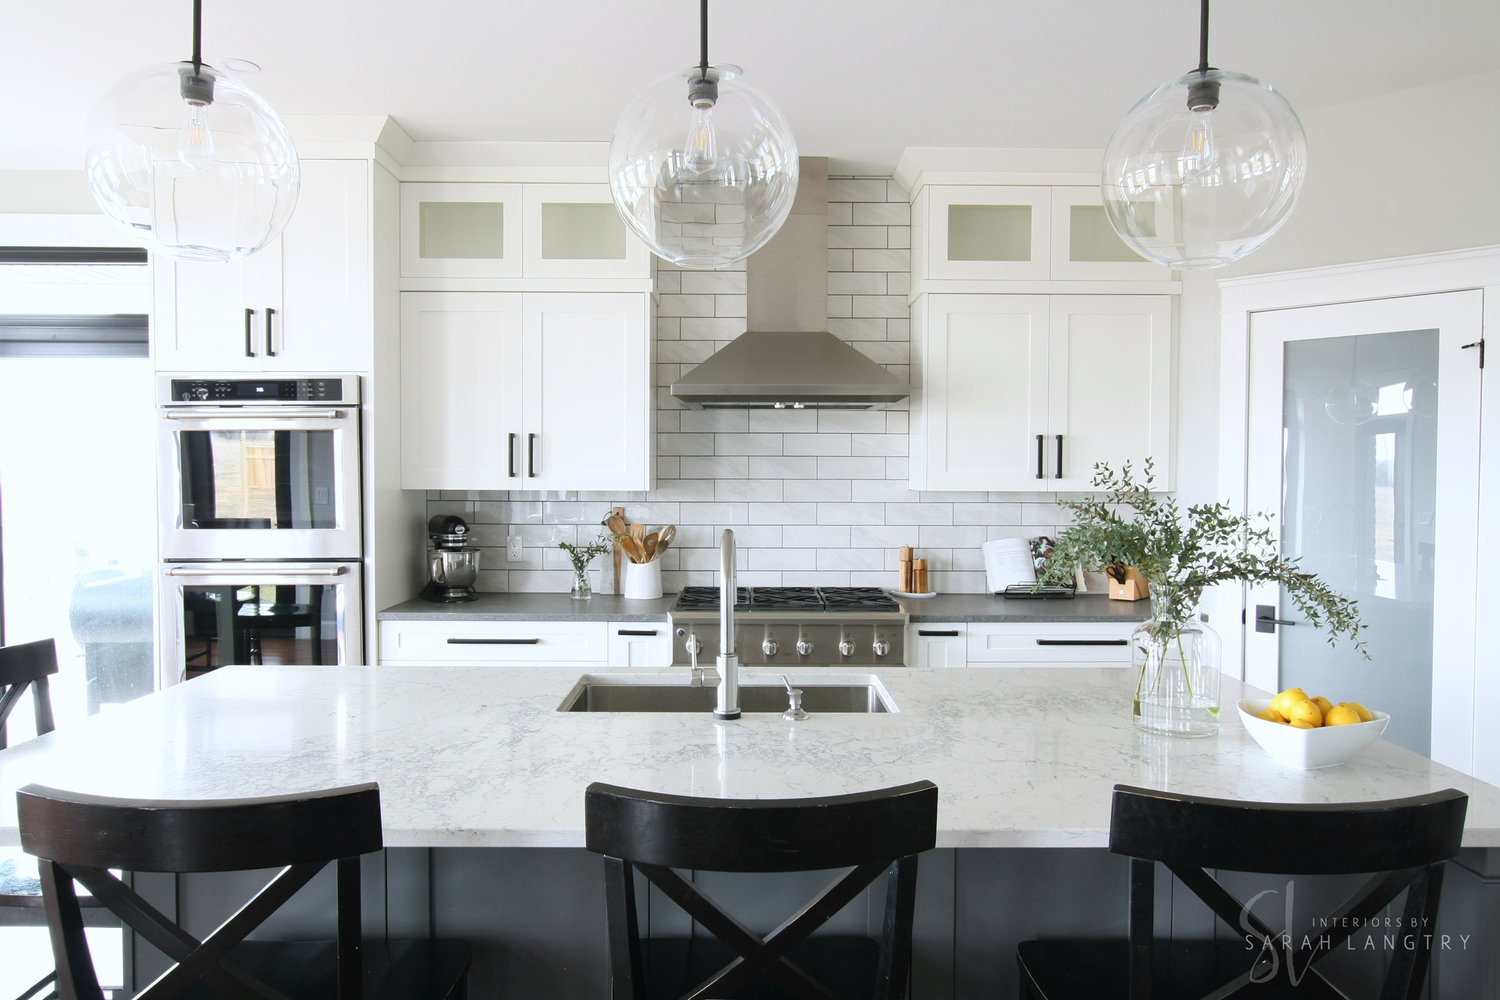 6 DESIGN TIPS TO HELP YOU PLAN YOUR DREAM KITCHEN ...